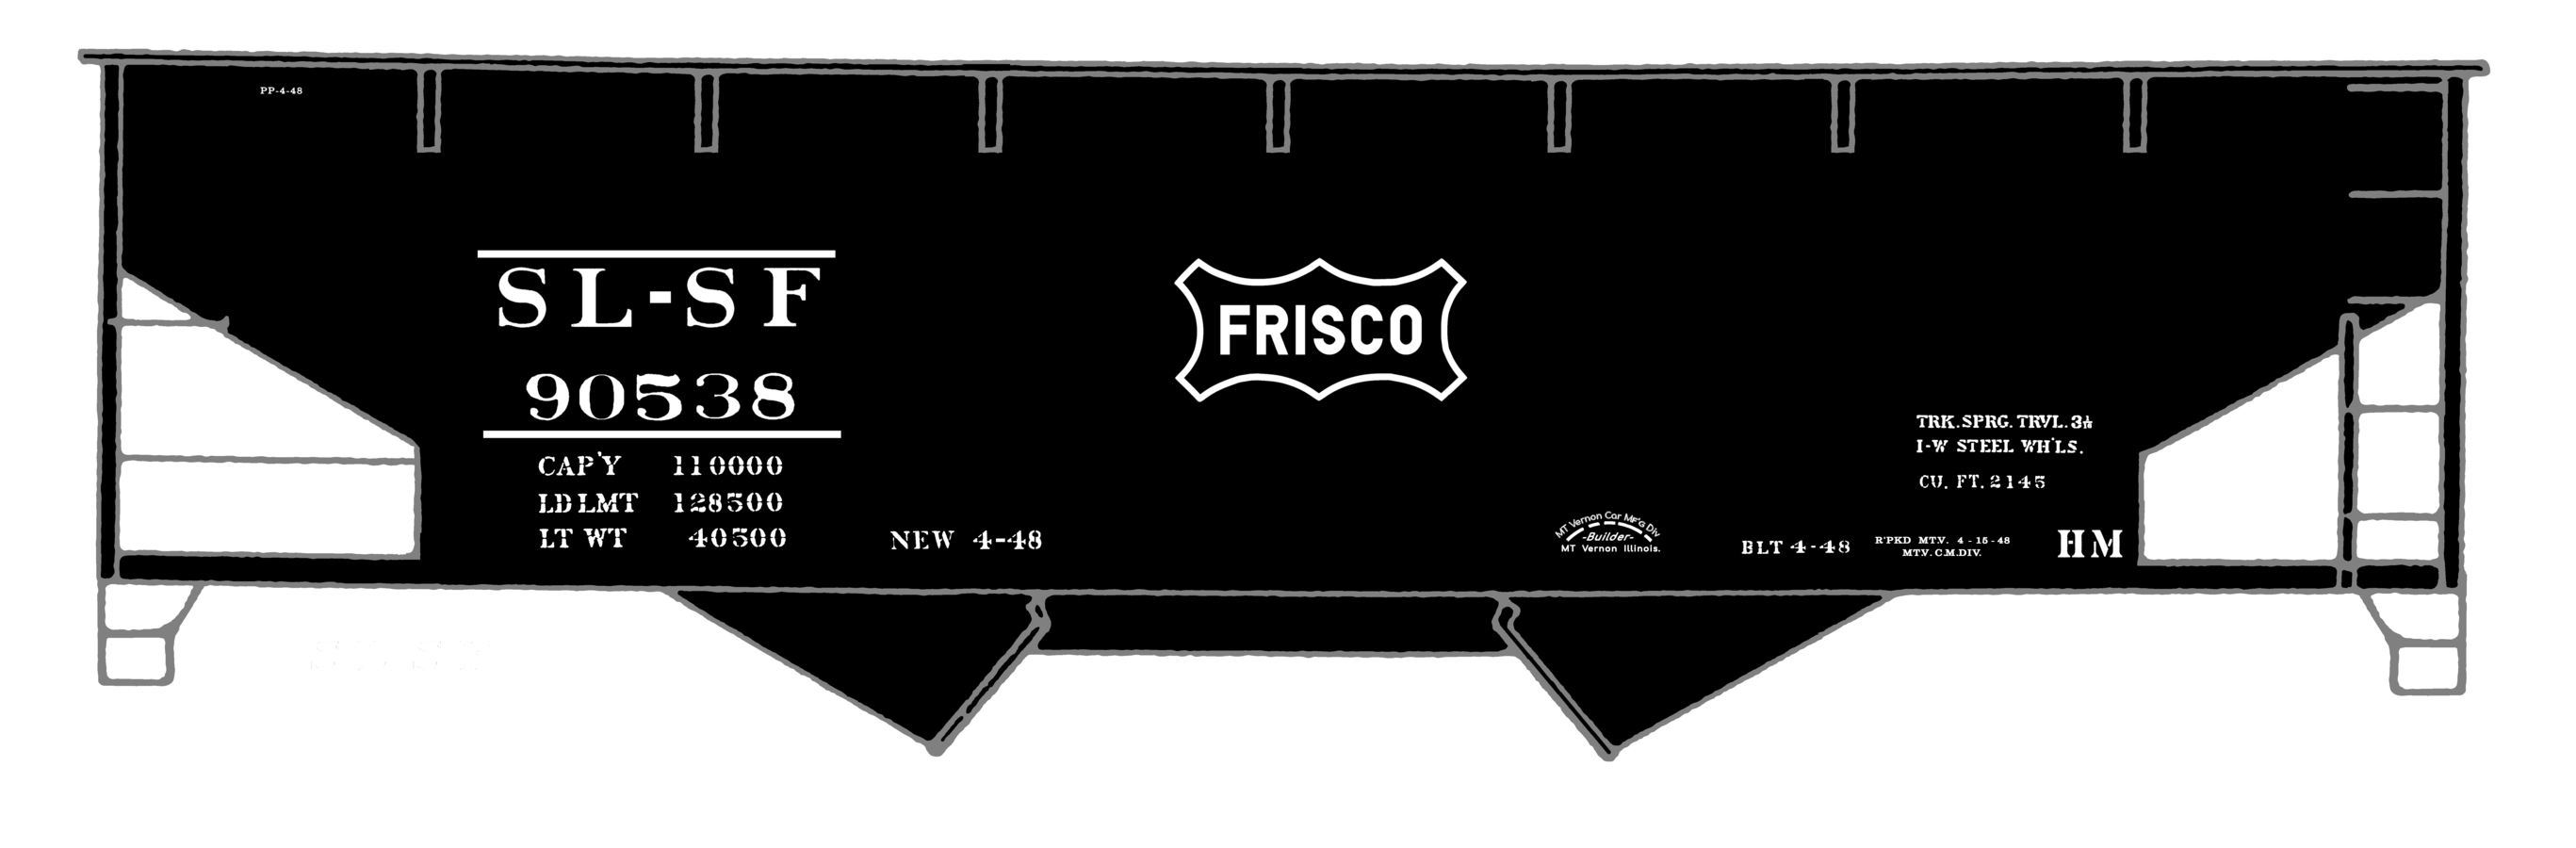 K4-S-Decals-SLSF-Frisco-Twin-Hopper-Car-White-Small-Herald thumbnail 3